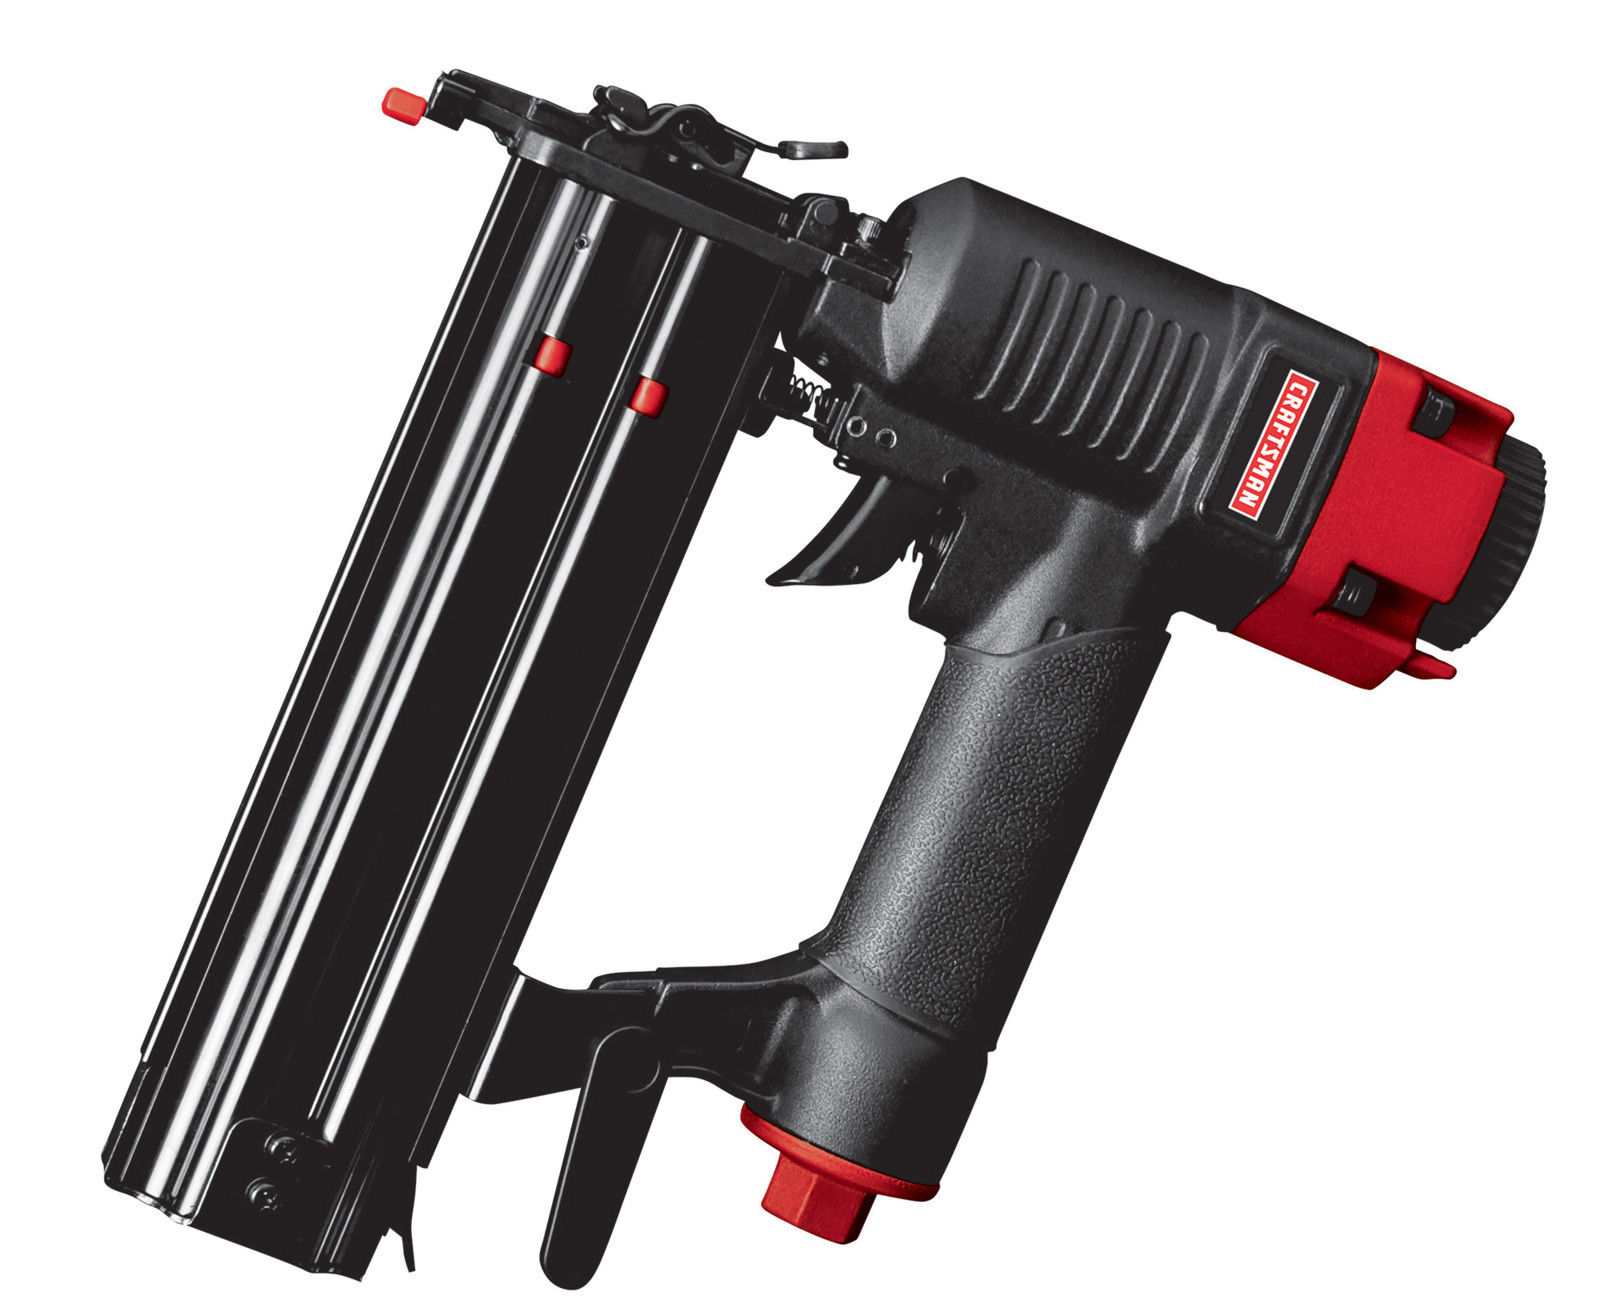 Craftsman Brad Nailer 18 Gauge 2 in. Nail Gun 70-110 PSI Pneumatic Stapler Kit Finishing Air Tool 51114 by